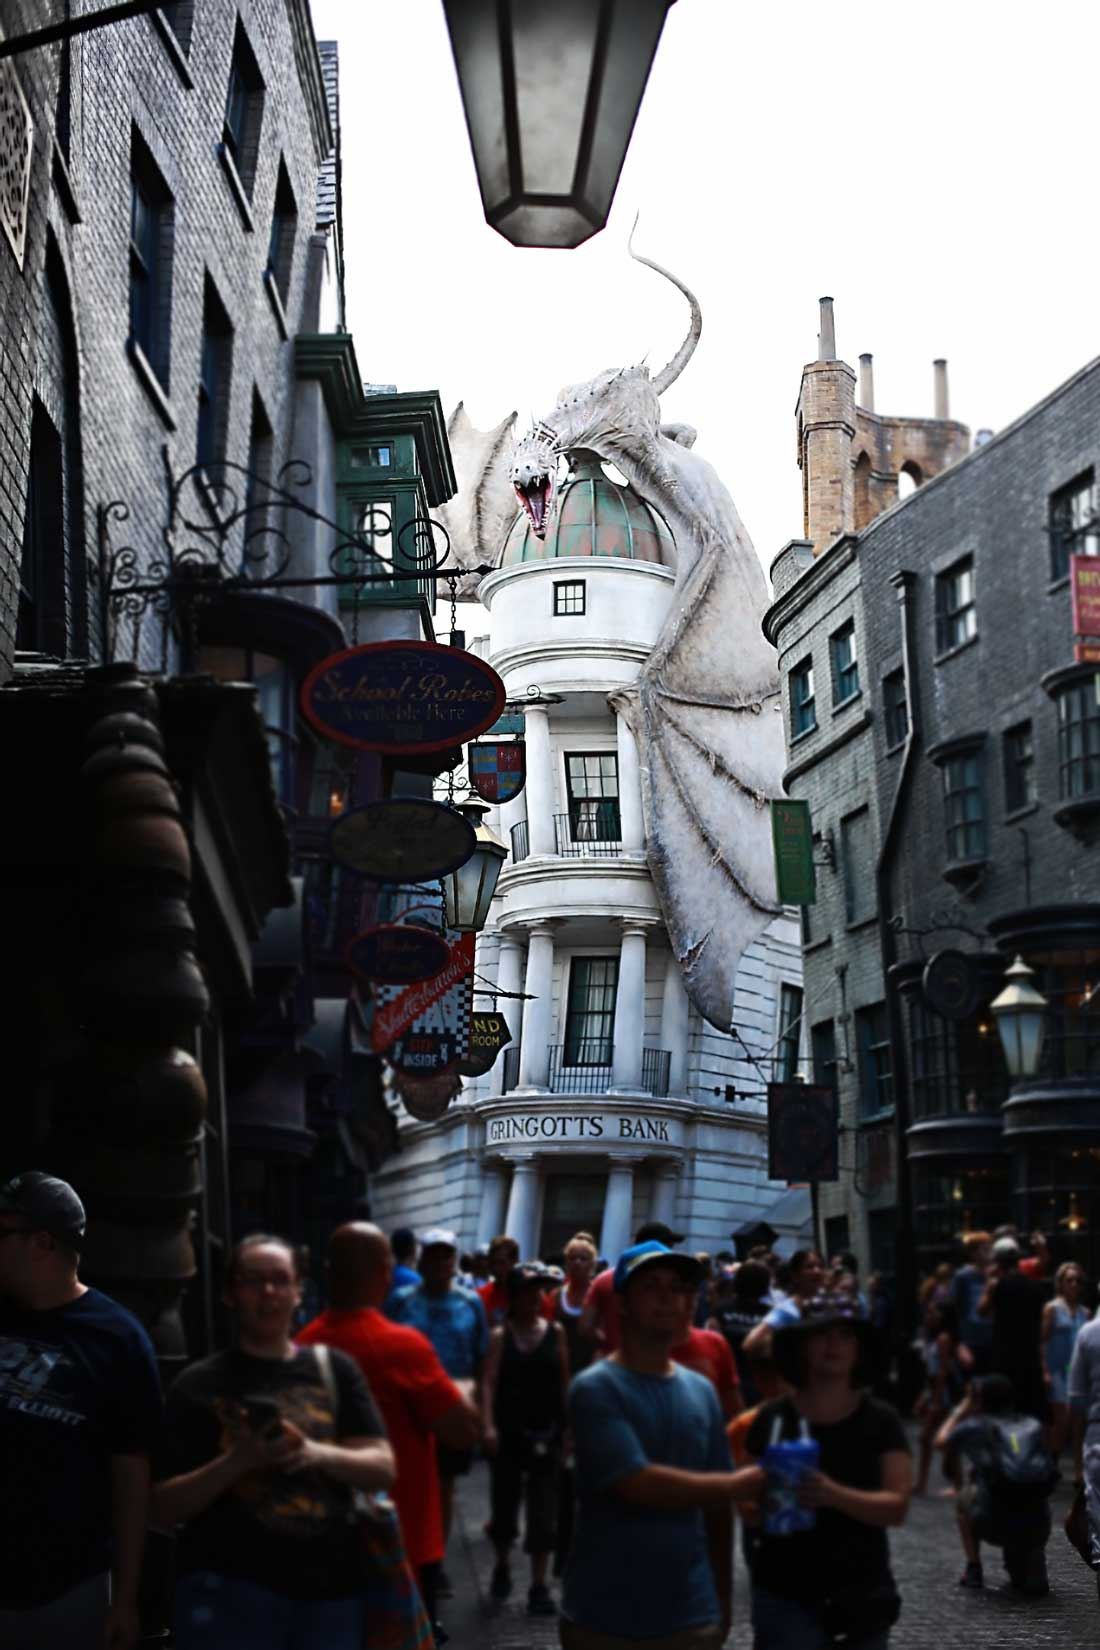 The dragon atop Gringott's bank at Harry Potter World